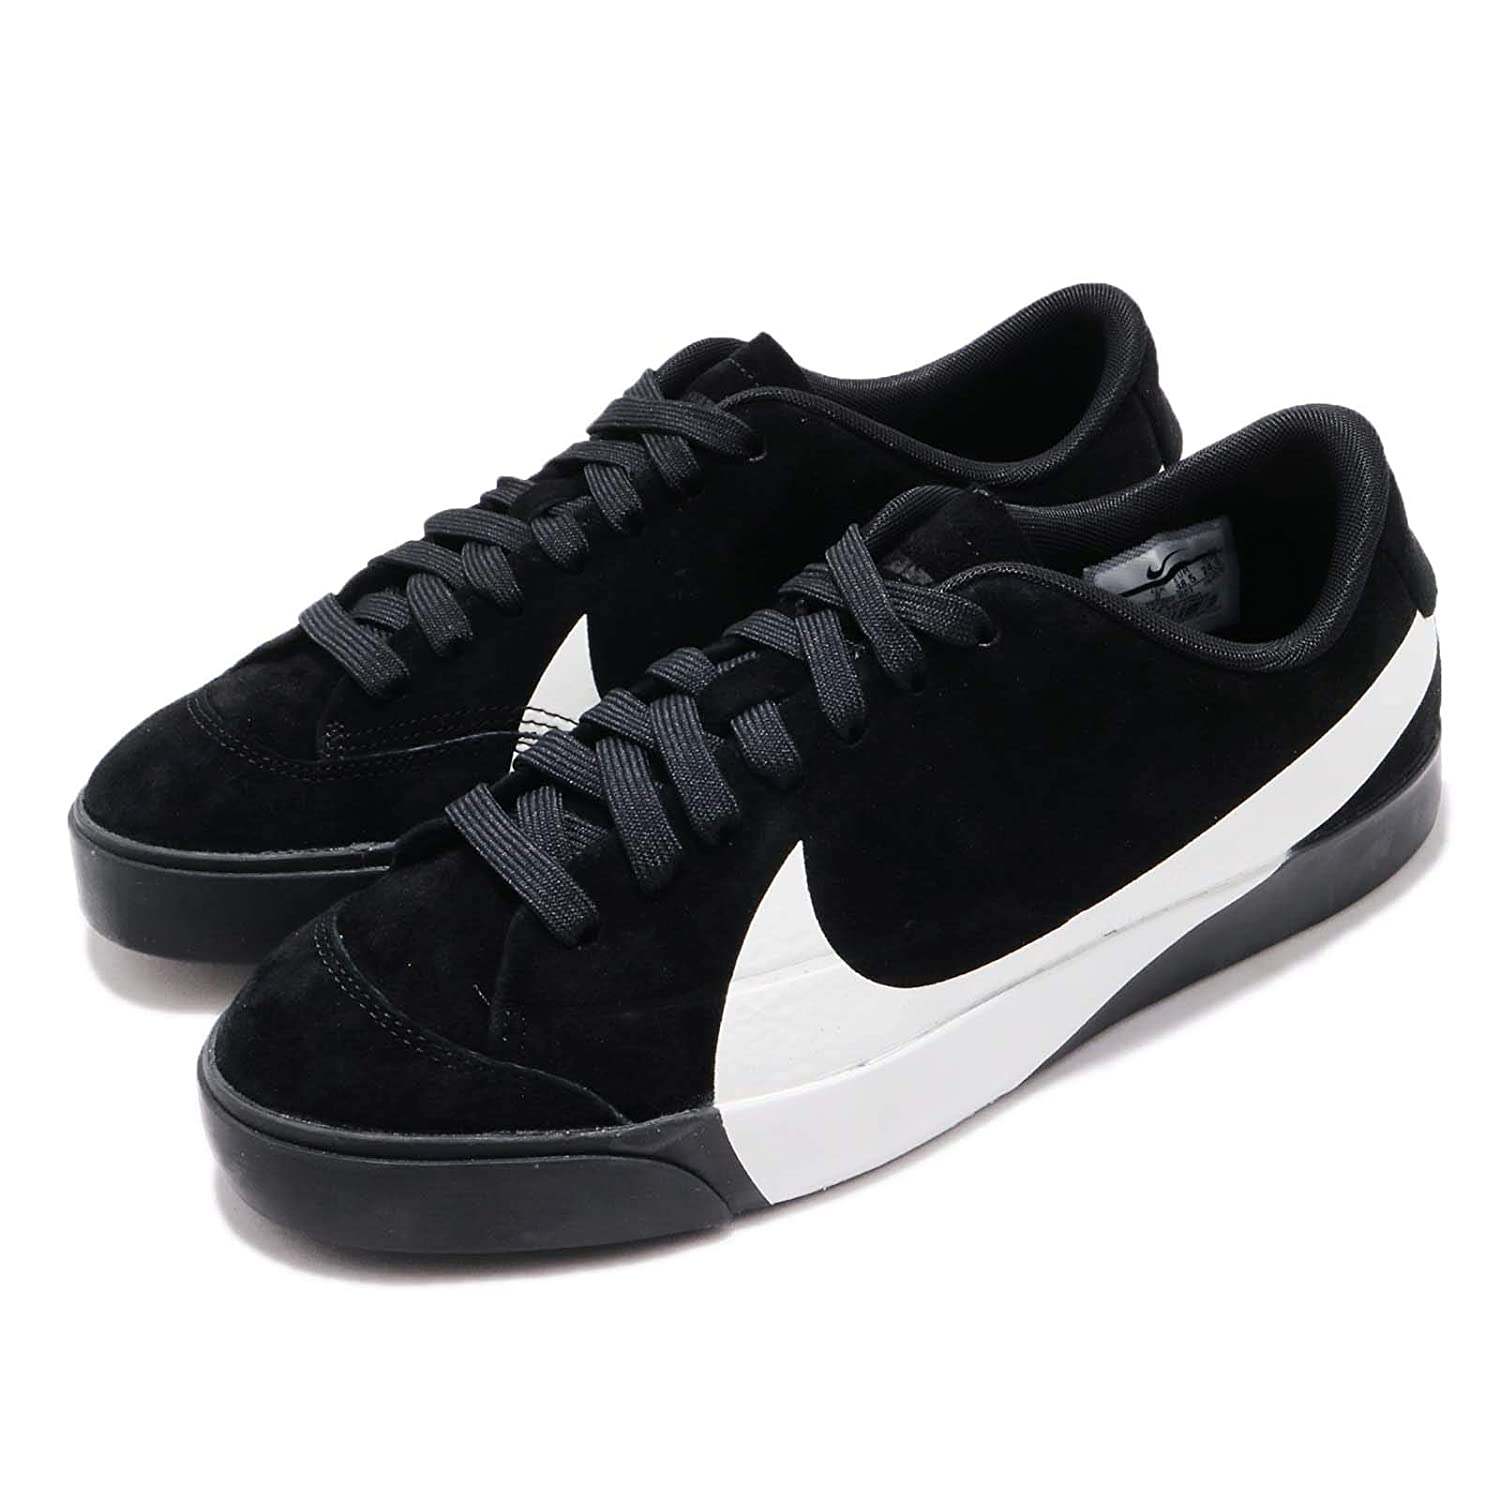 Nike Blazer City Low Lx Womens Trainers Av2253 Sneakers Shoes